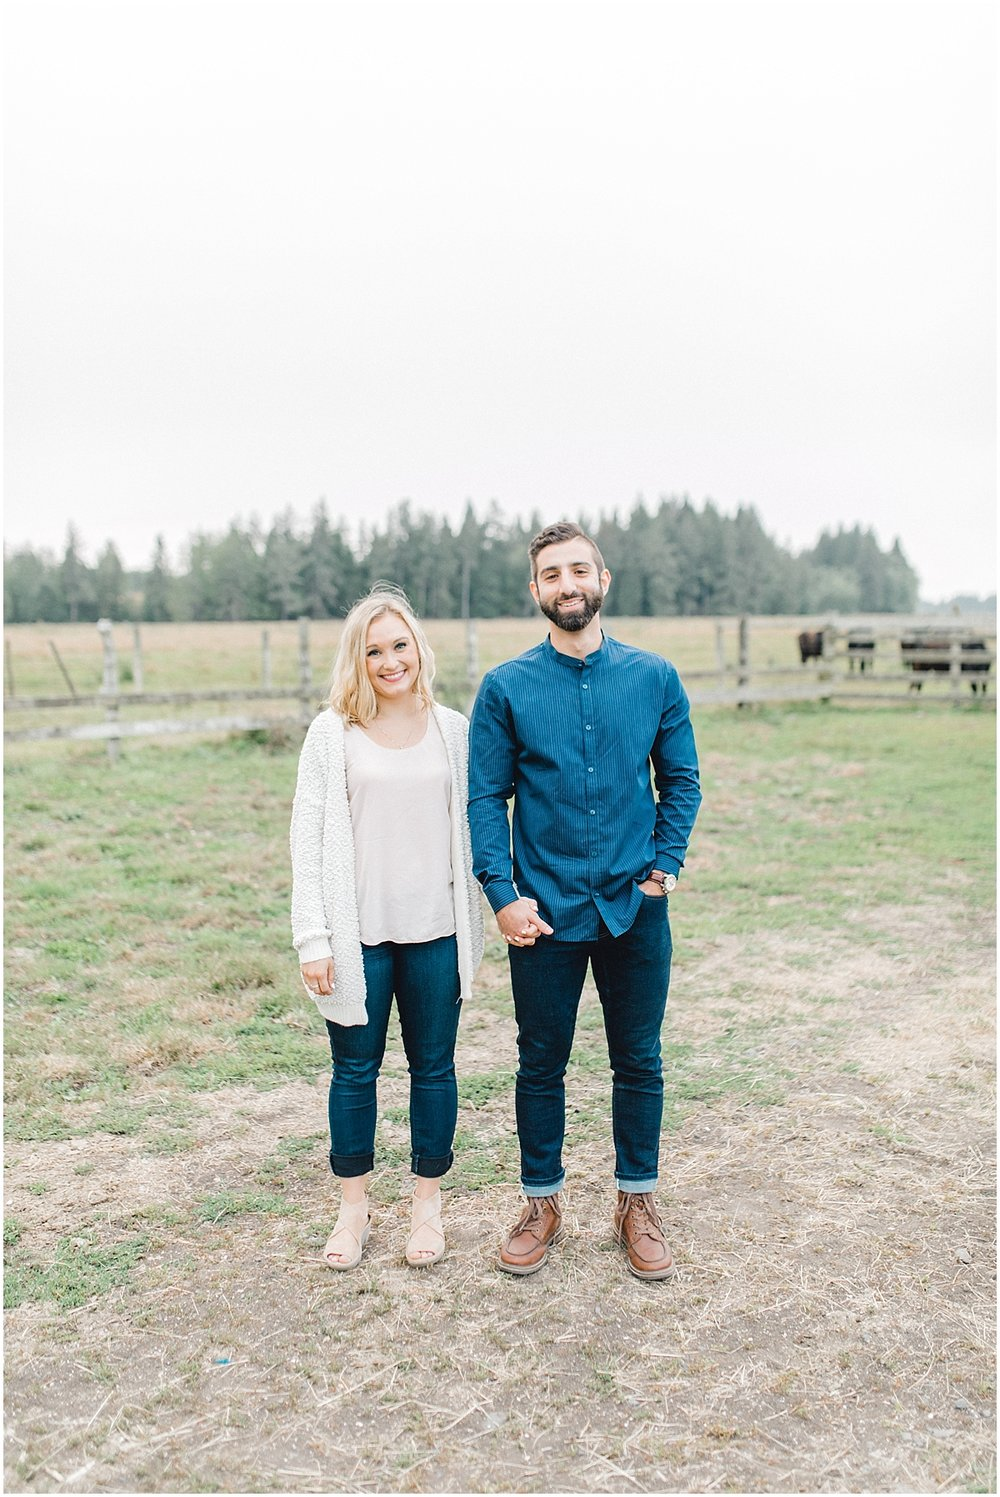 Emma Rose Company | PNW Engagement Session | What to Wear for Pictures | Rose Ranch Engagement | Sunset | Kindred Presets | Seattle Wedding Photographer Light and Airy_0276.jpg